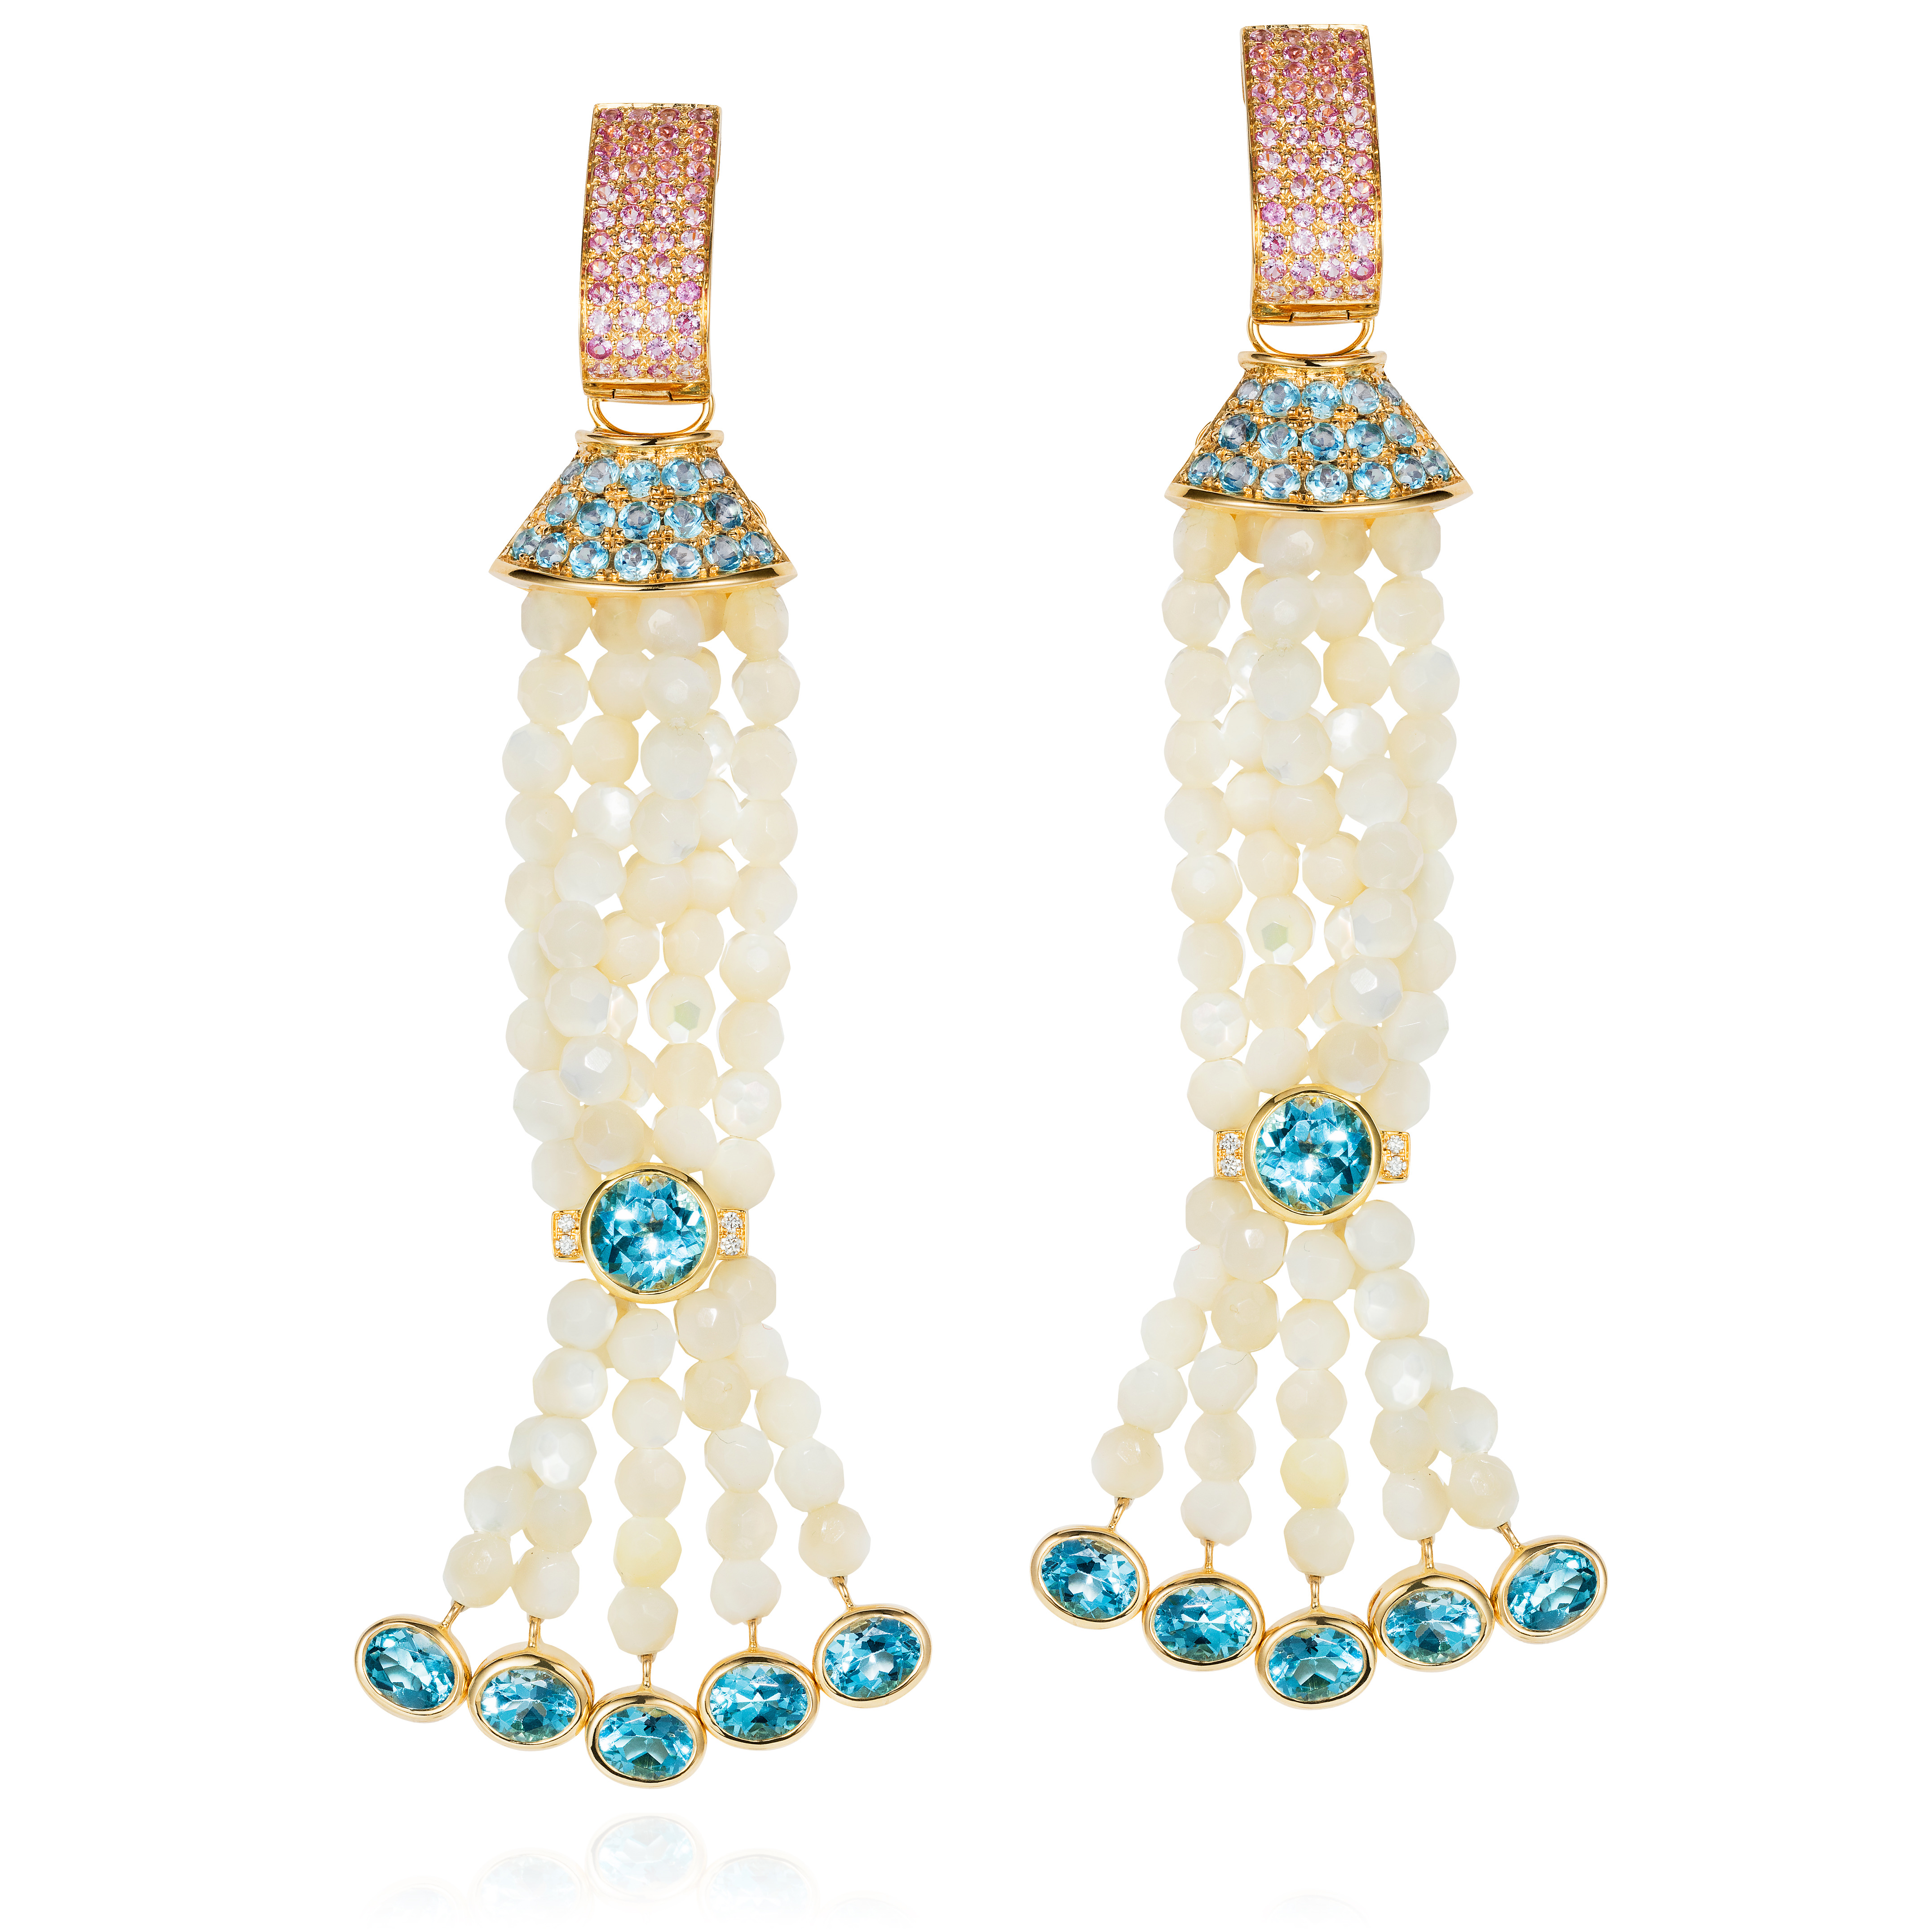 Blue Topaz, Diamond And Pink Sapphire Earrings In 18k Gold With Faceted Mother-of-pearl Beads